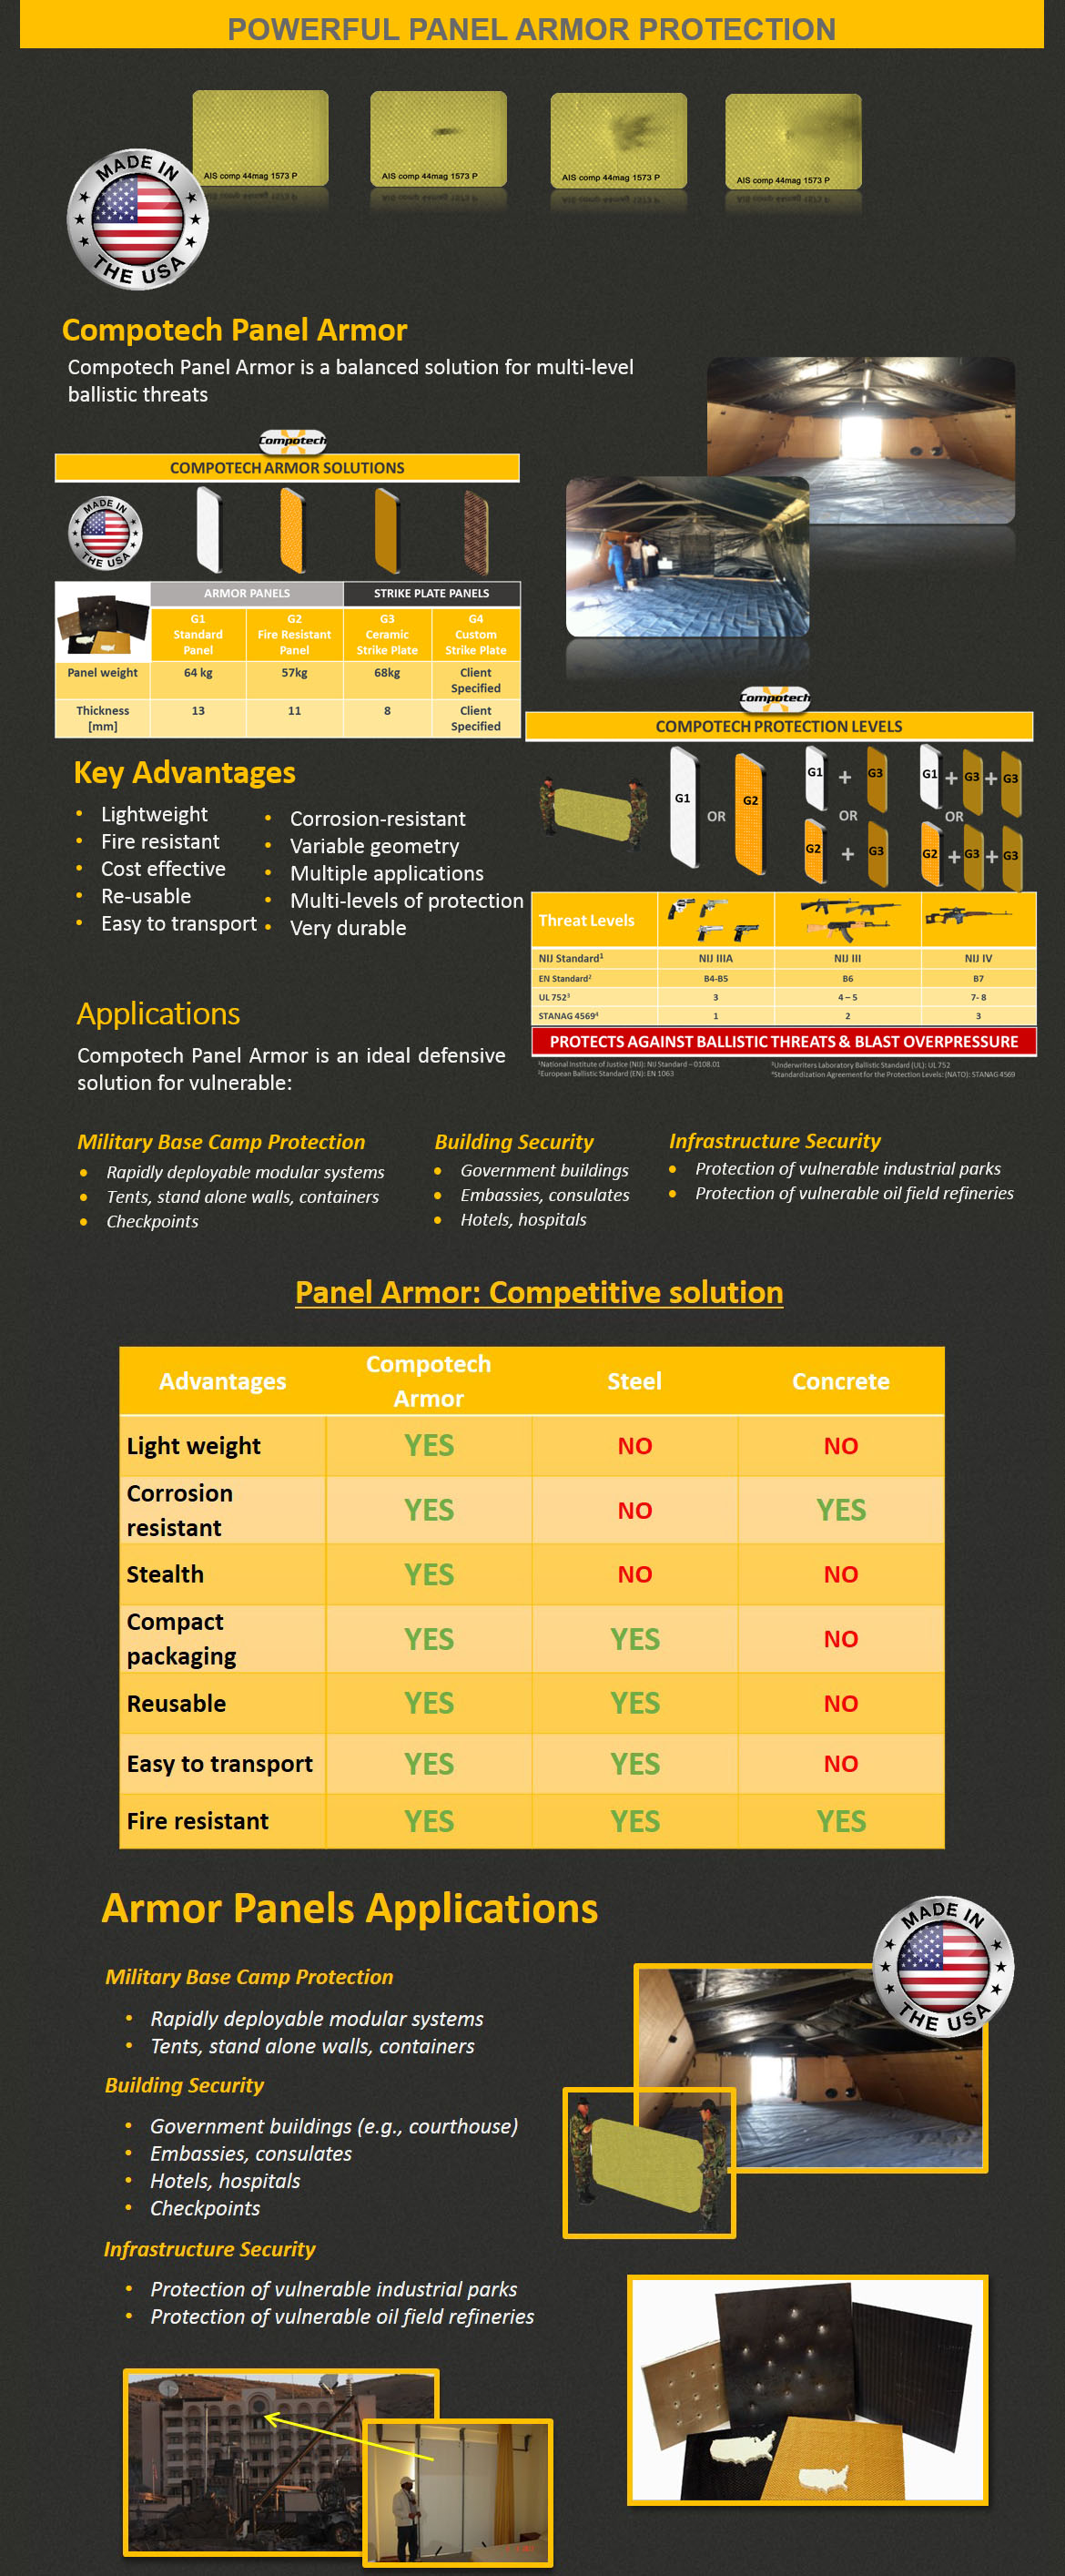 Powerful panel armor website page 1